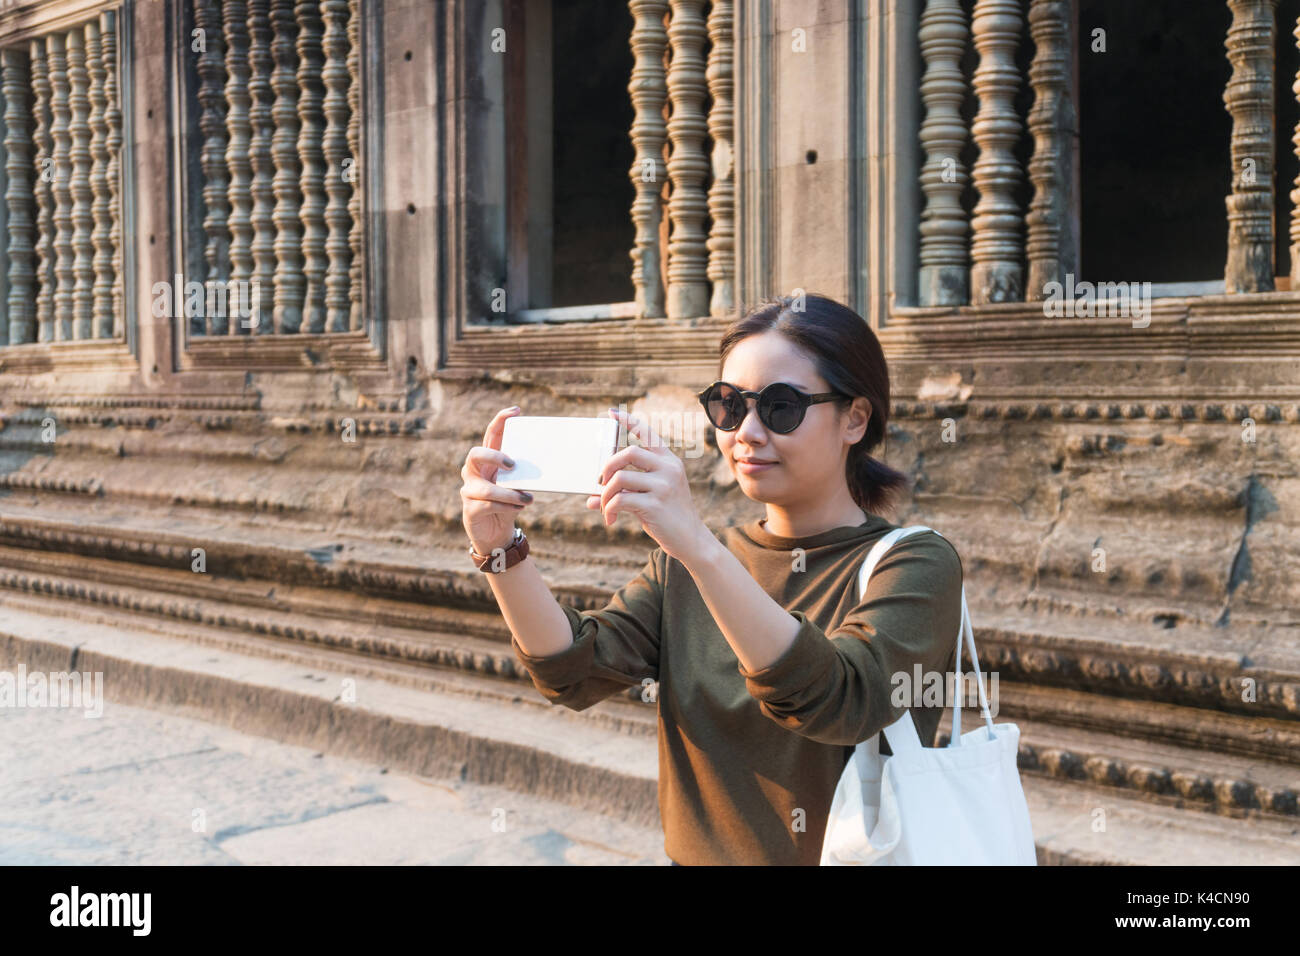 Female traveler taking photo with her smartphone in angkor wat siem reap cambodia - Stock Image